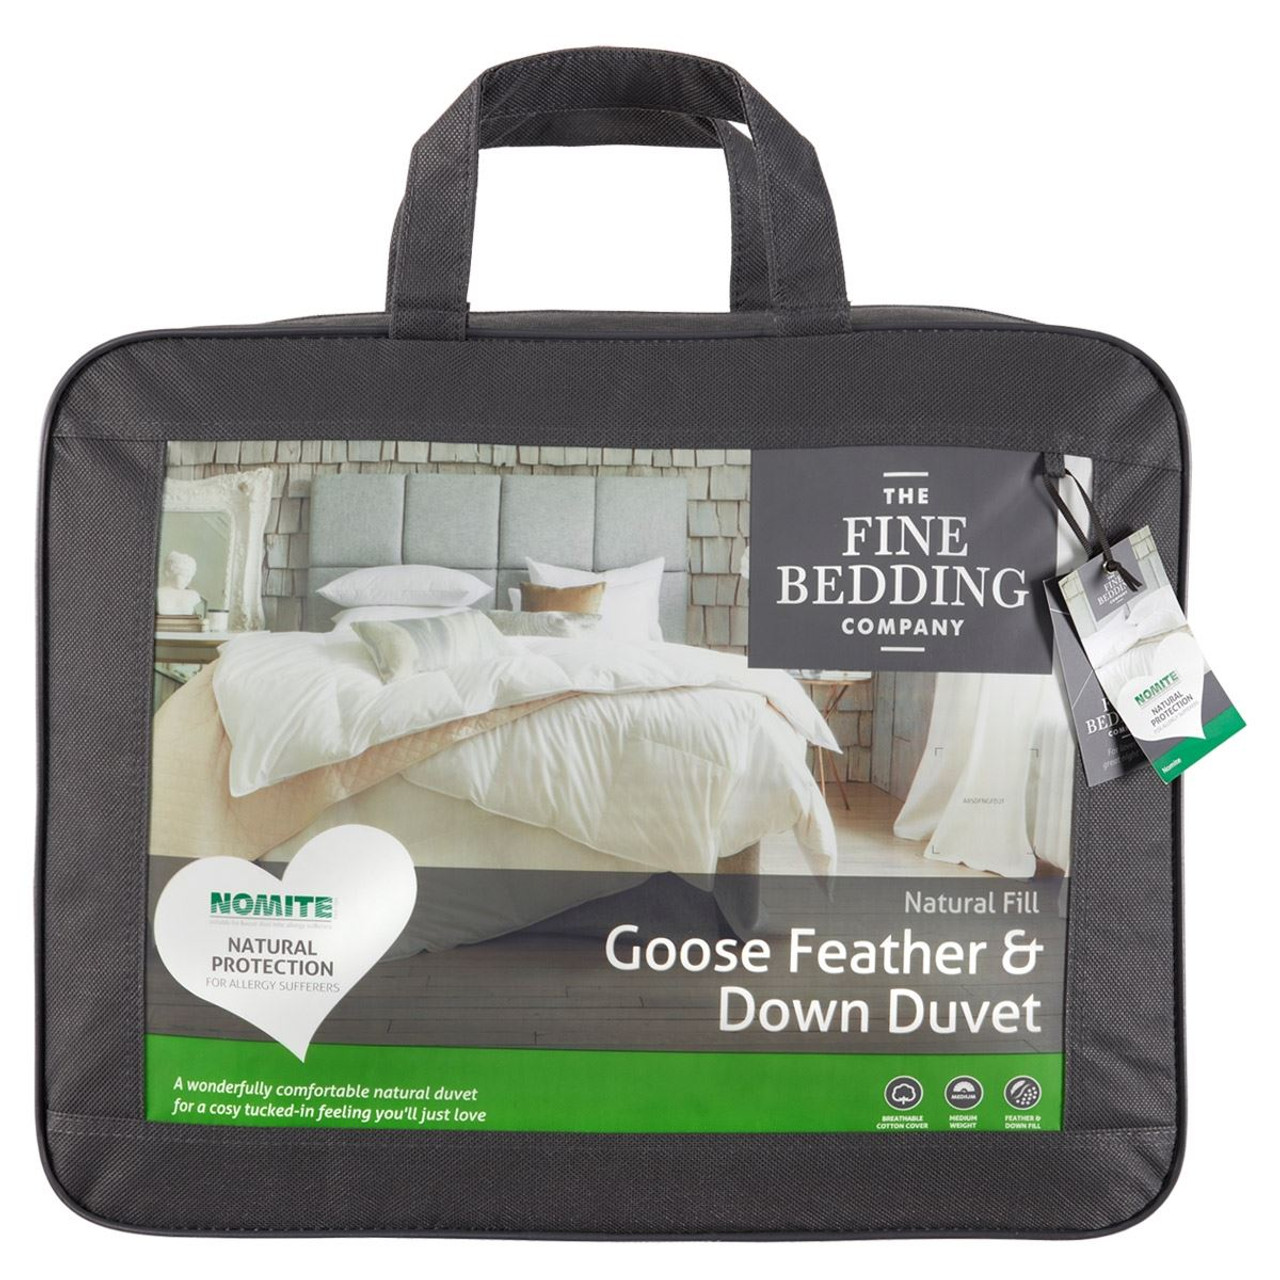 The Fine Bedding Company Goose Feather & Down Duvet packaging